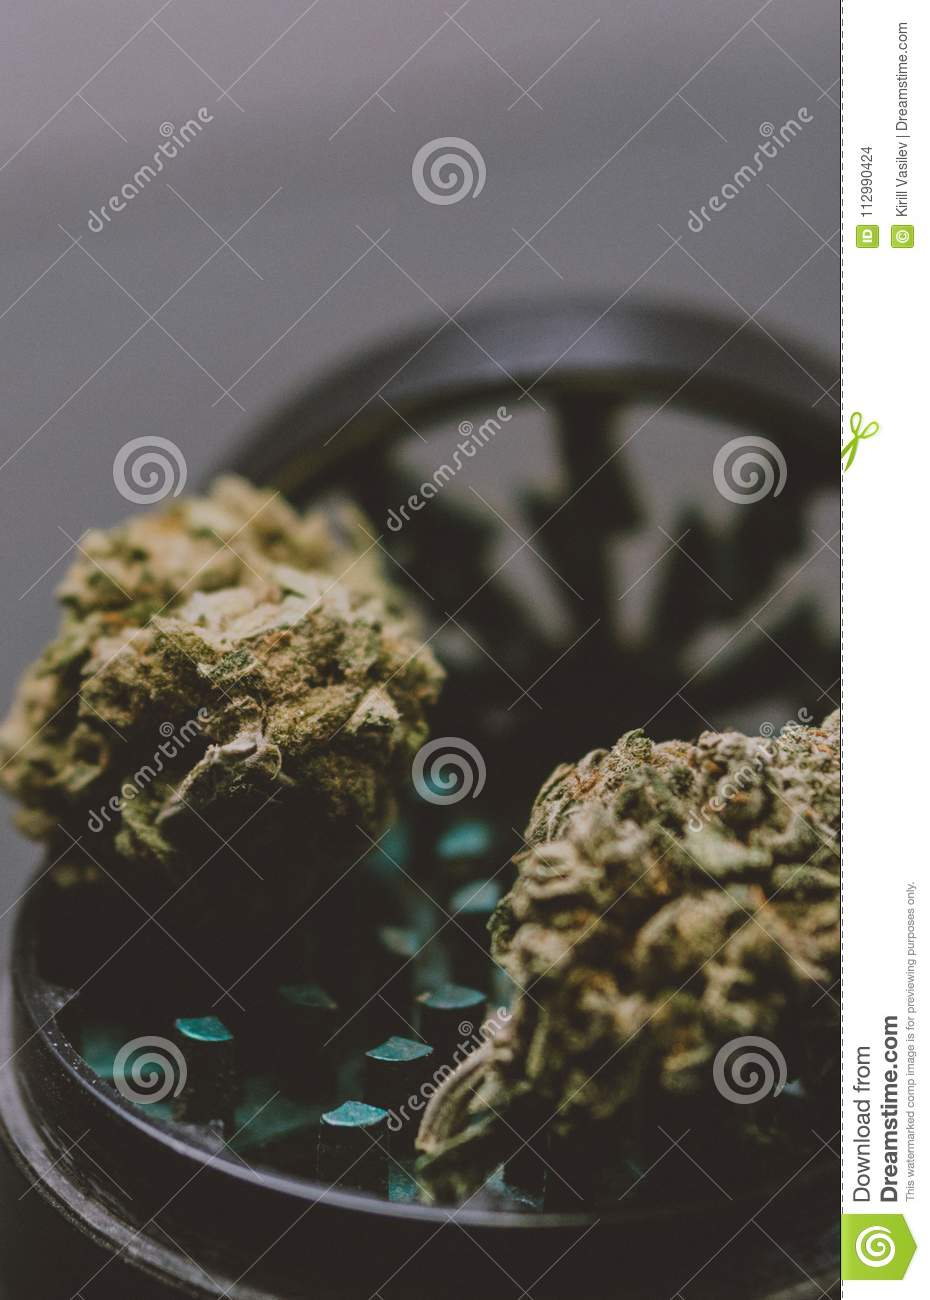 Detail of cannabis buds KUSH on glass background - medical marijuana dispensary concept. Social insta size for stories